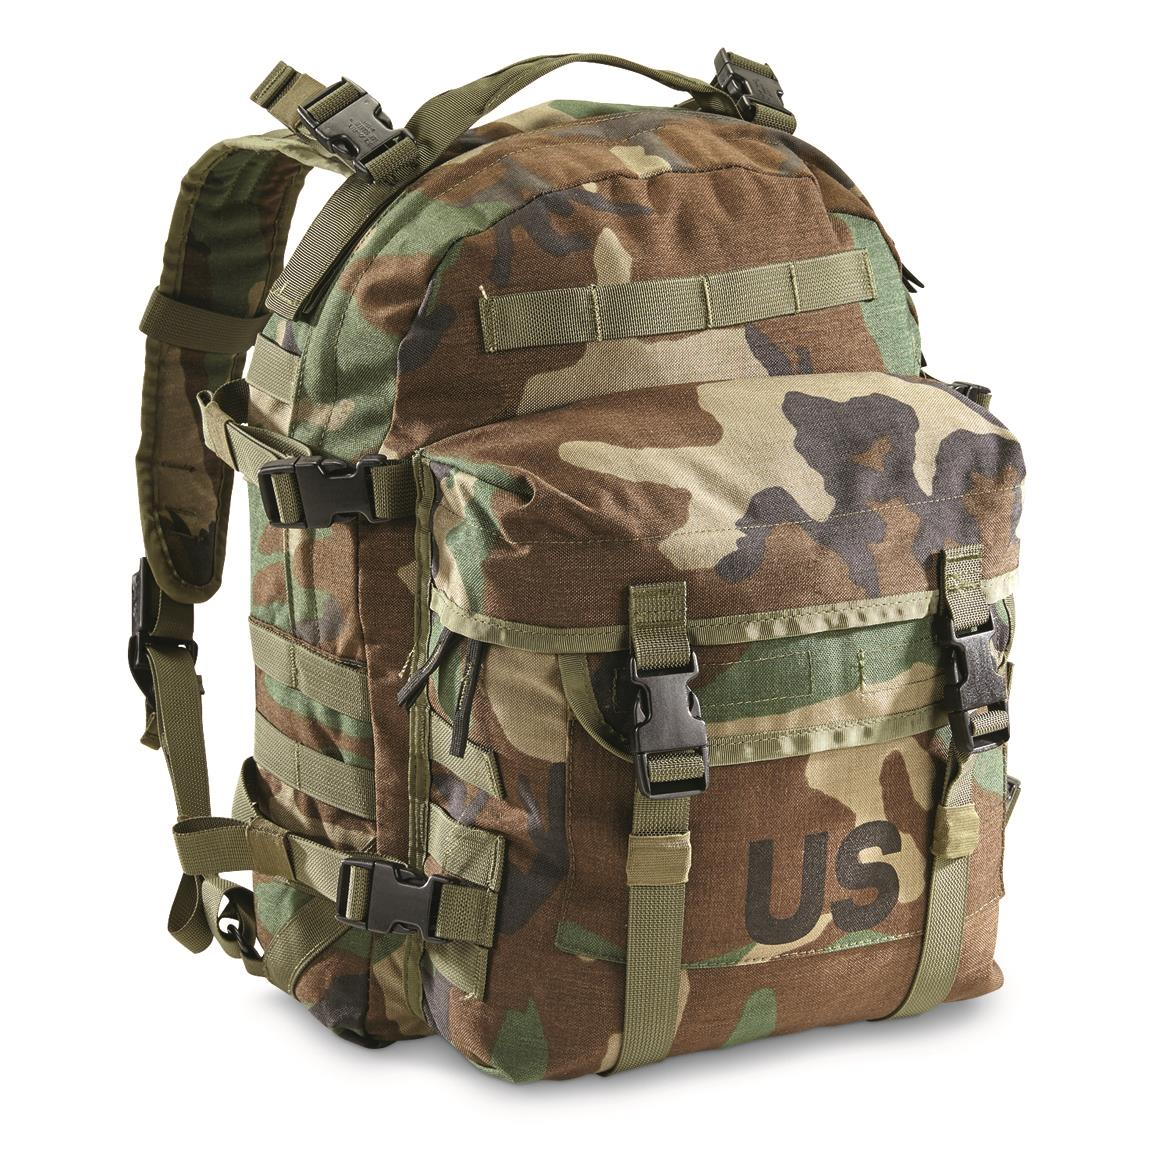 NEW USGI US Military Army MOLLE II Woodland Camo 3 Day Assault Pack,  Backpack